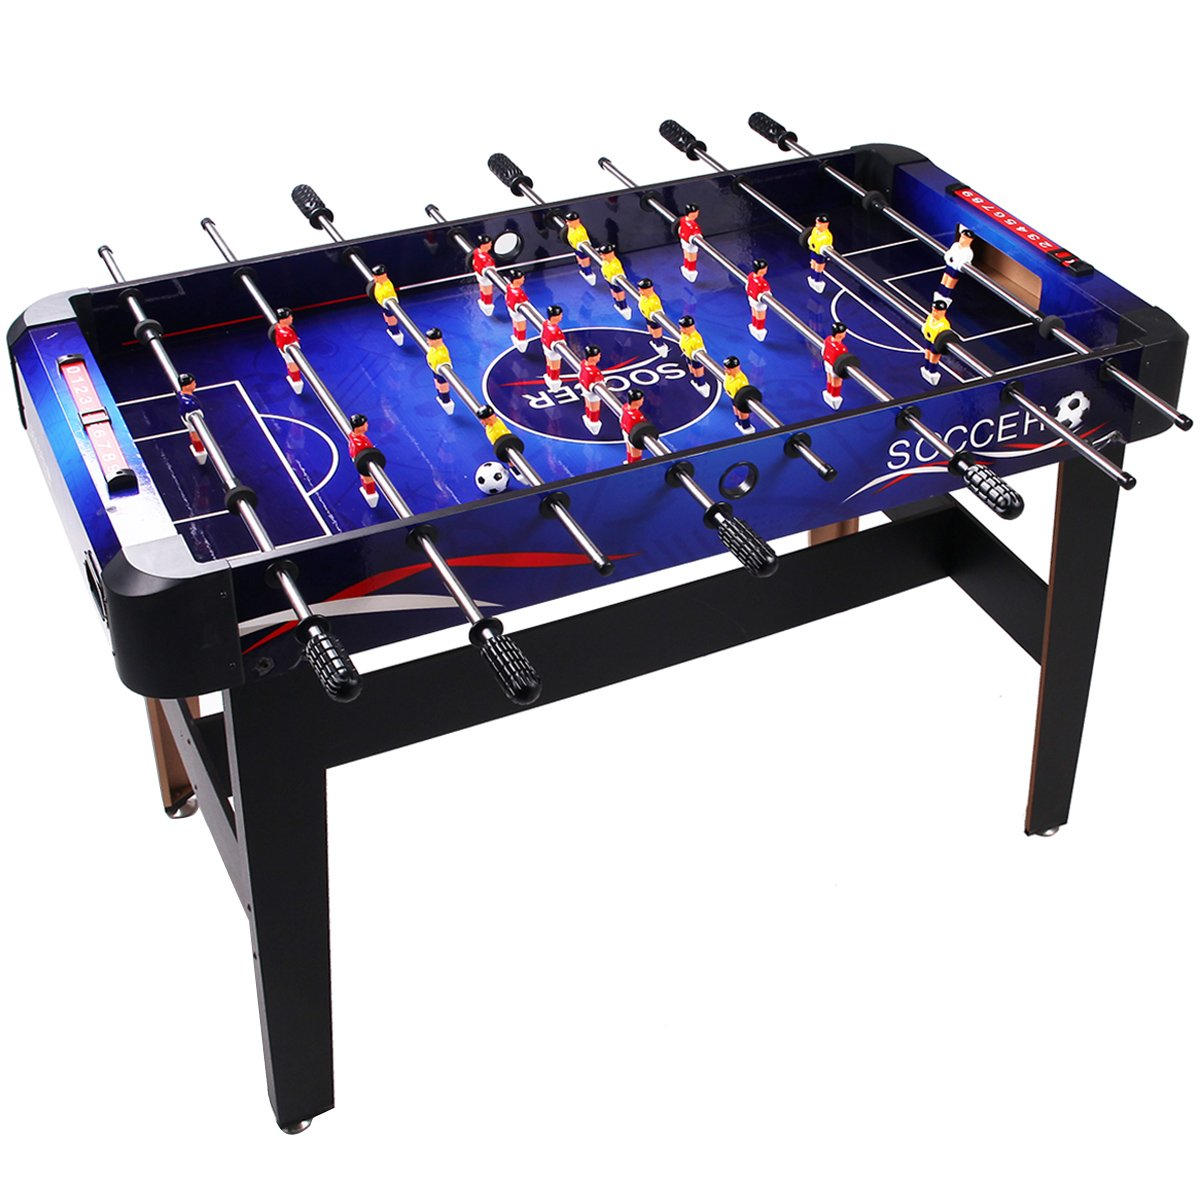 Giantex Foosball Table For Kids Soccer Football Competition Sized Arcade Game Room for Family Use (48'')